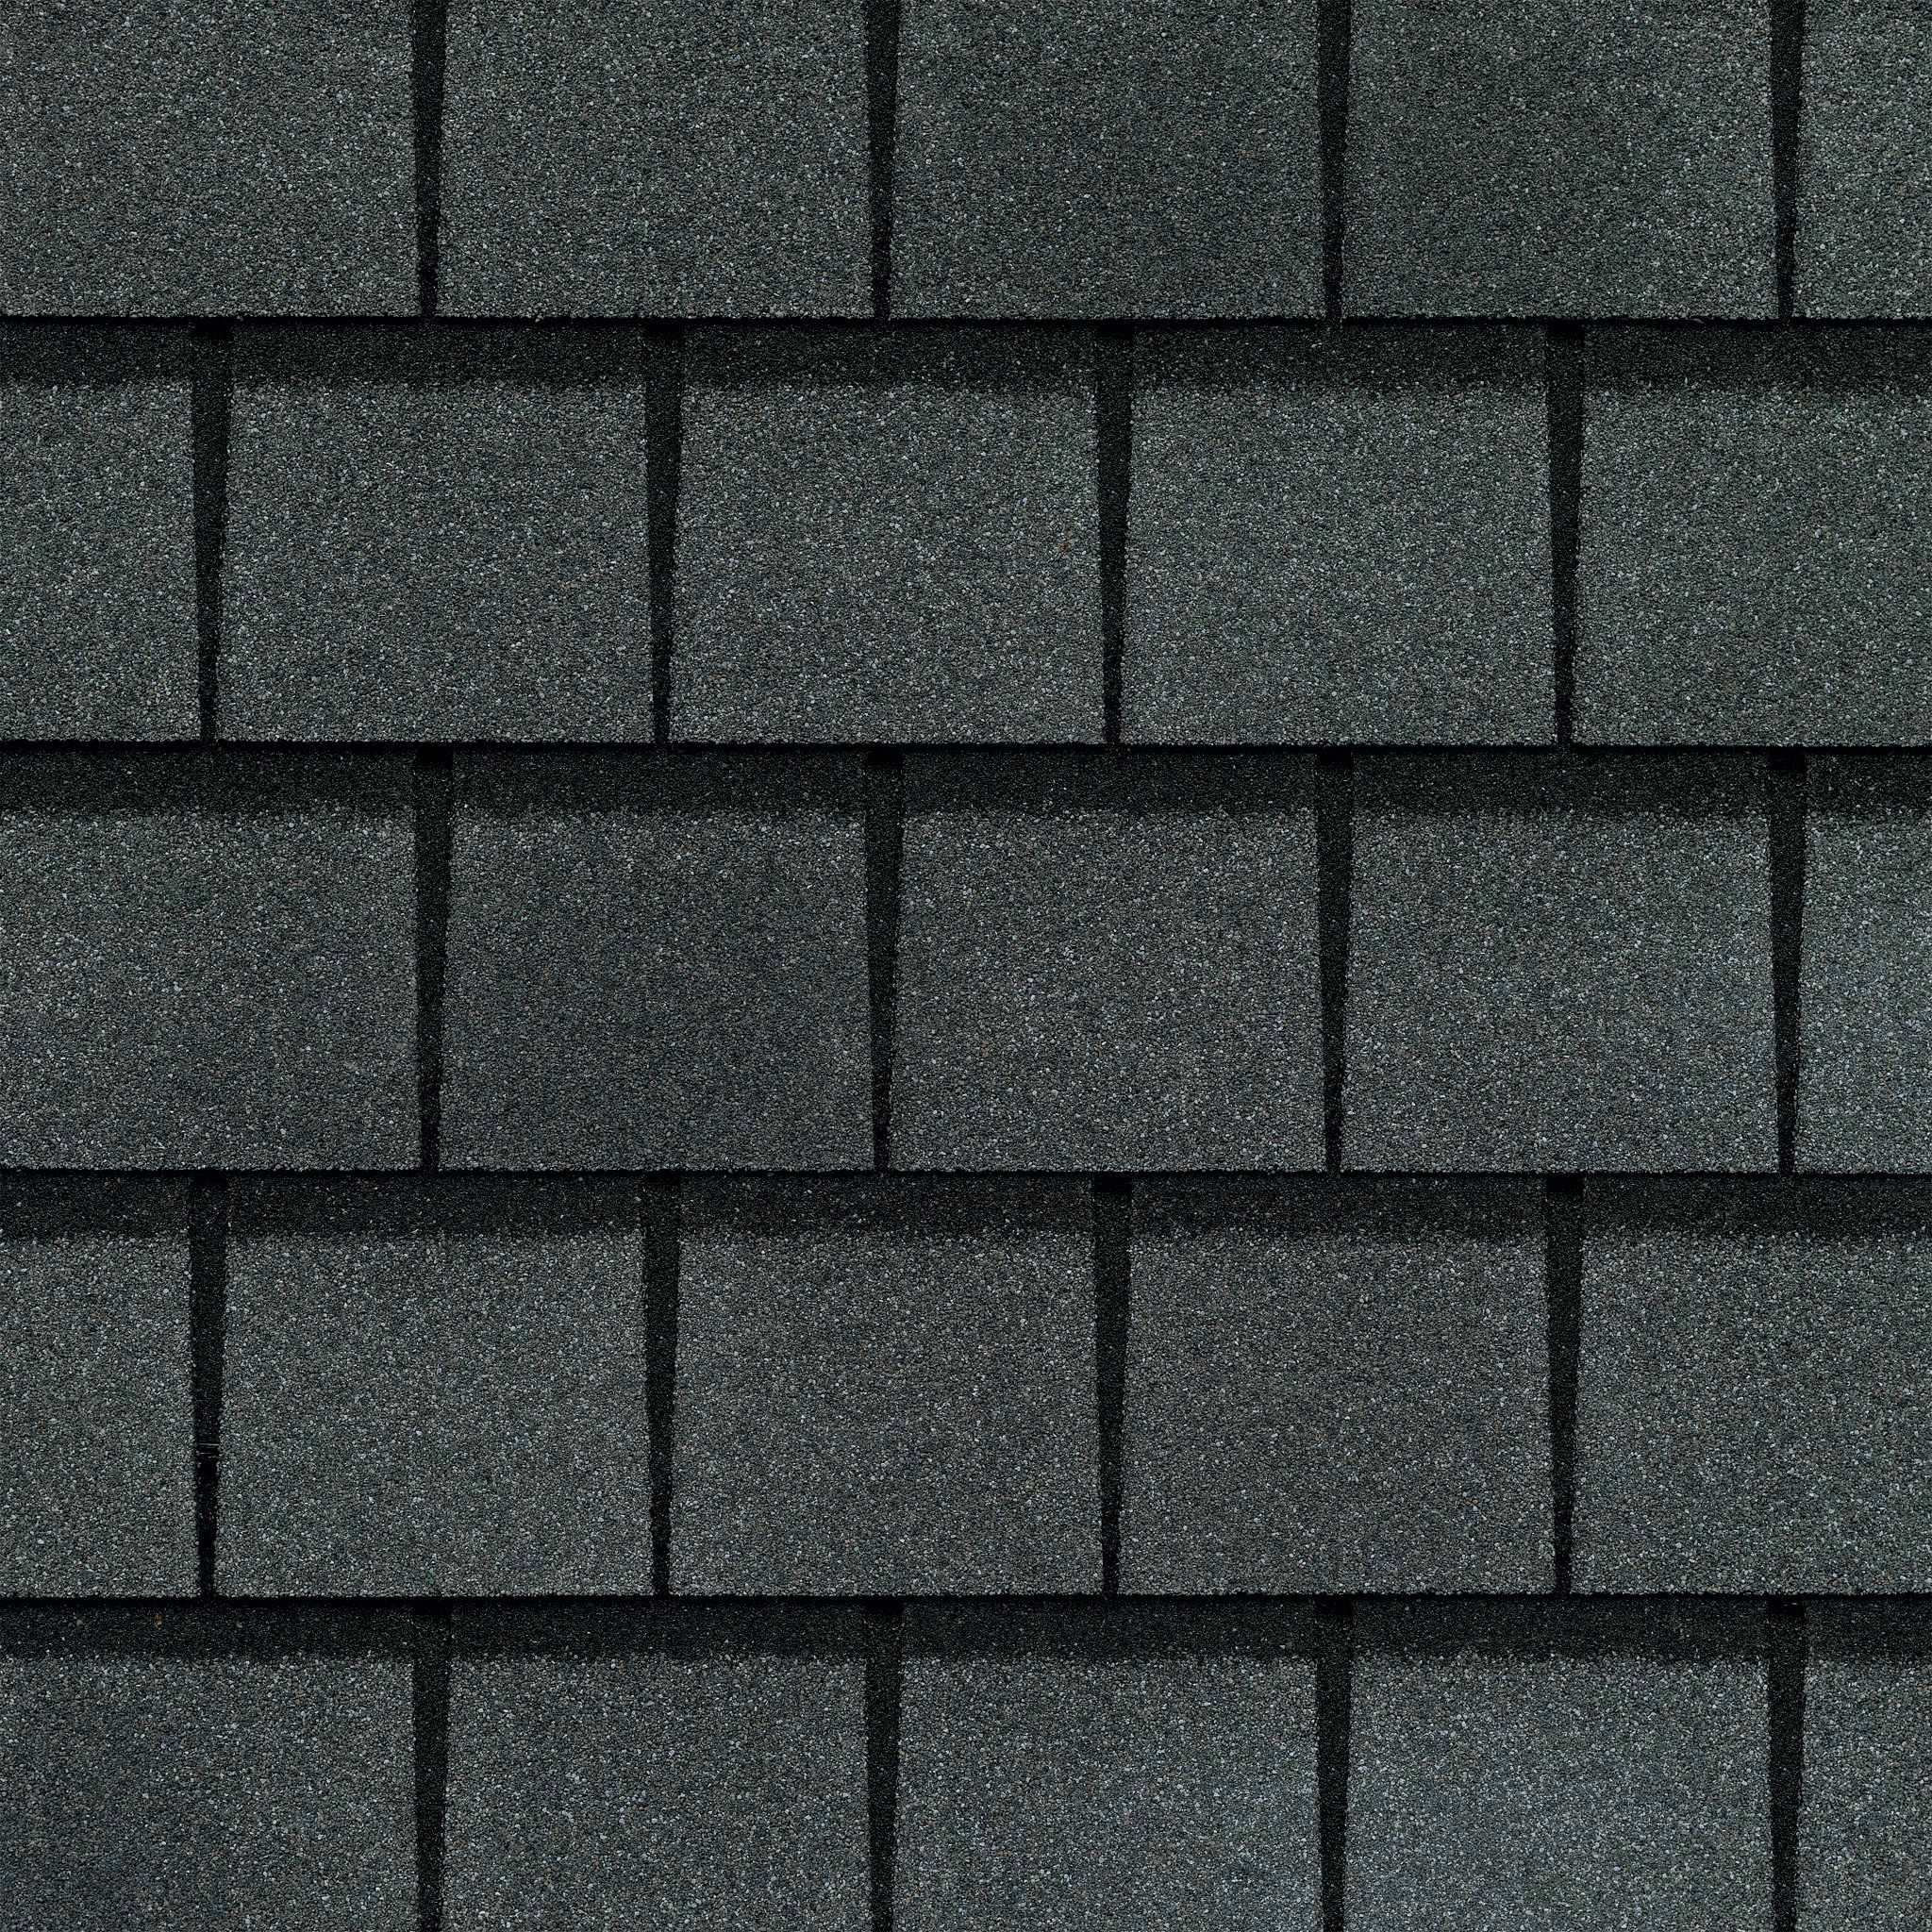 Close up photo of GAF's Slateline Antique Slate shingle swatch